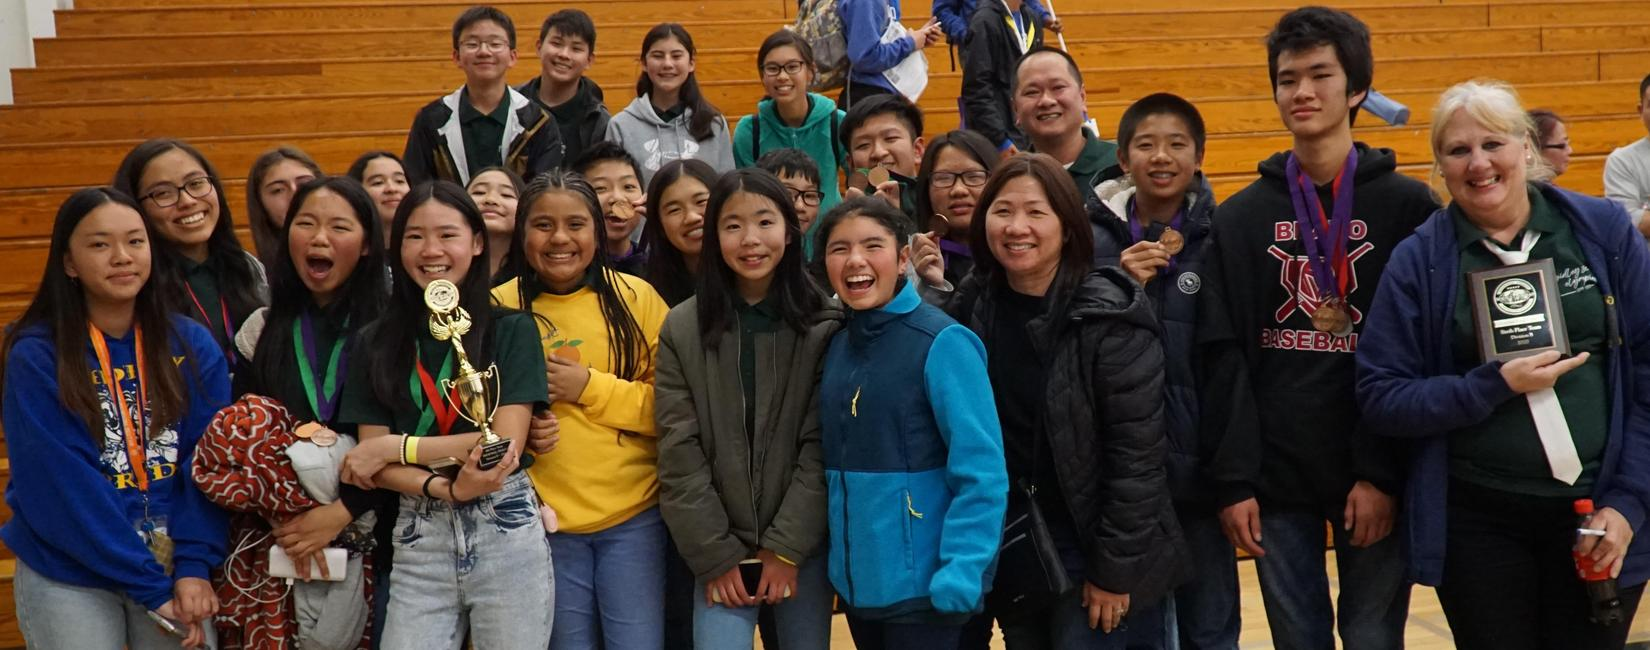 EMCSD Science Olympiad